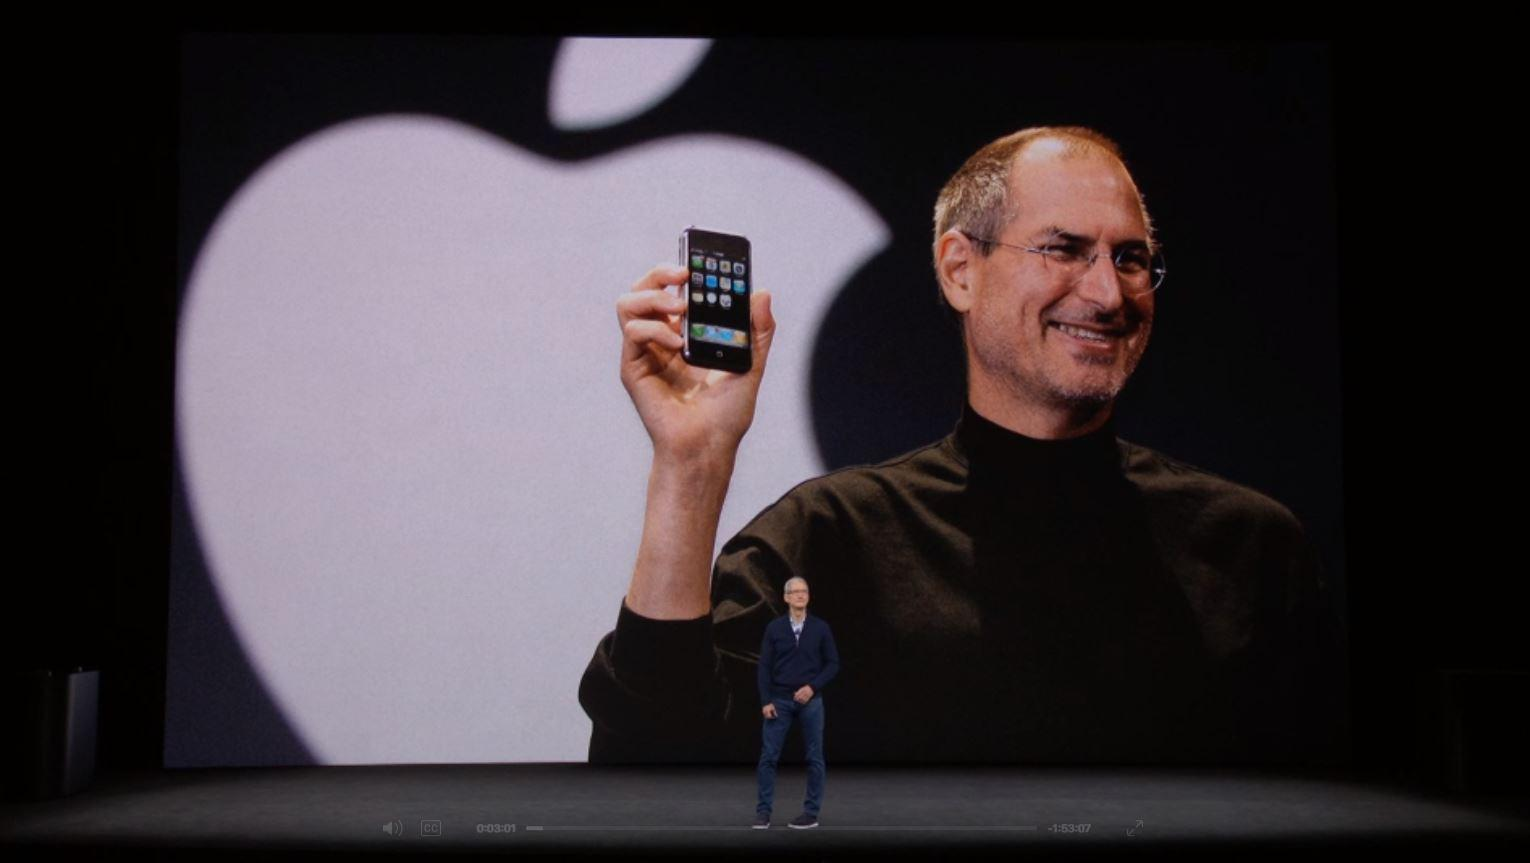 The 2017 Apple launch presentation of the iPhone X, iPhone 8 and iPhone 8 Plus, at the Steve Jobs Theatre.